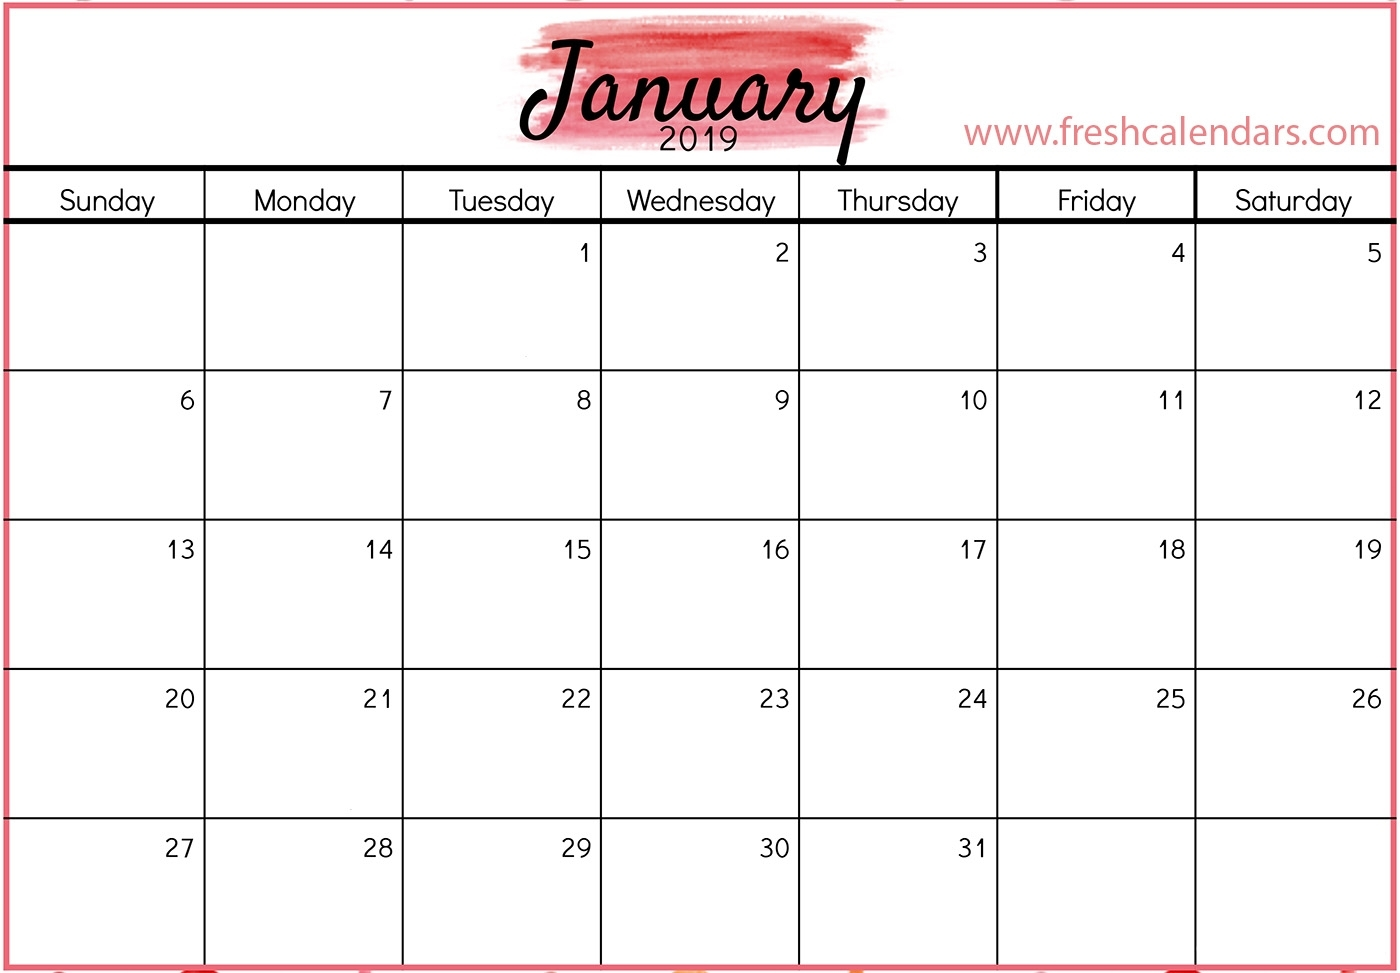 January Calendar 2019 - Free Printable Calendar, Templates And Holidays regarding Picture Of A January Calender